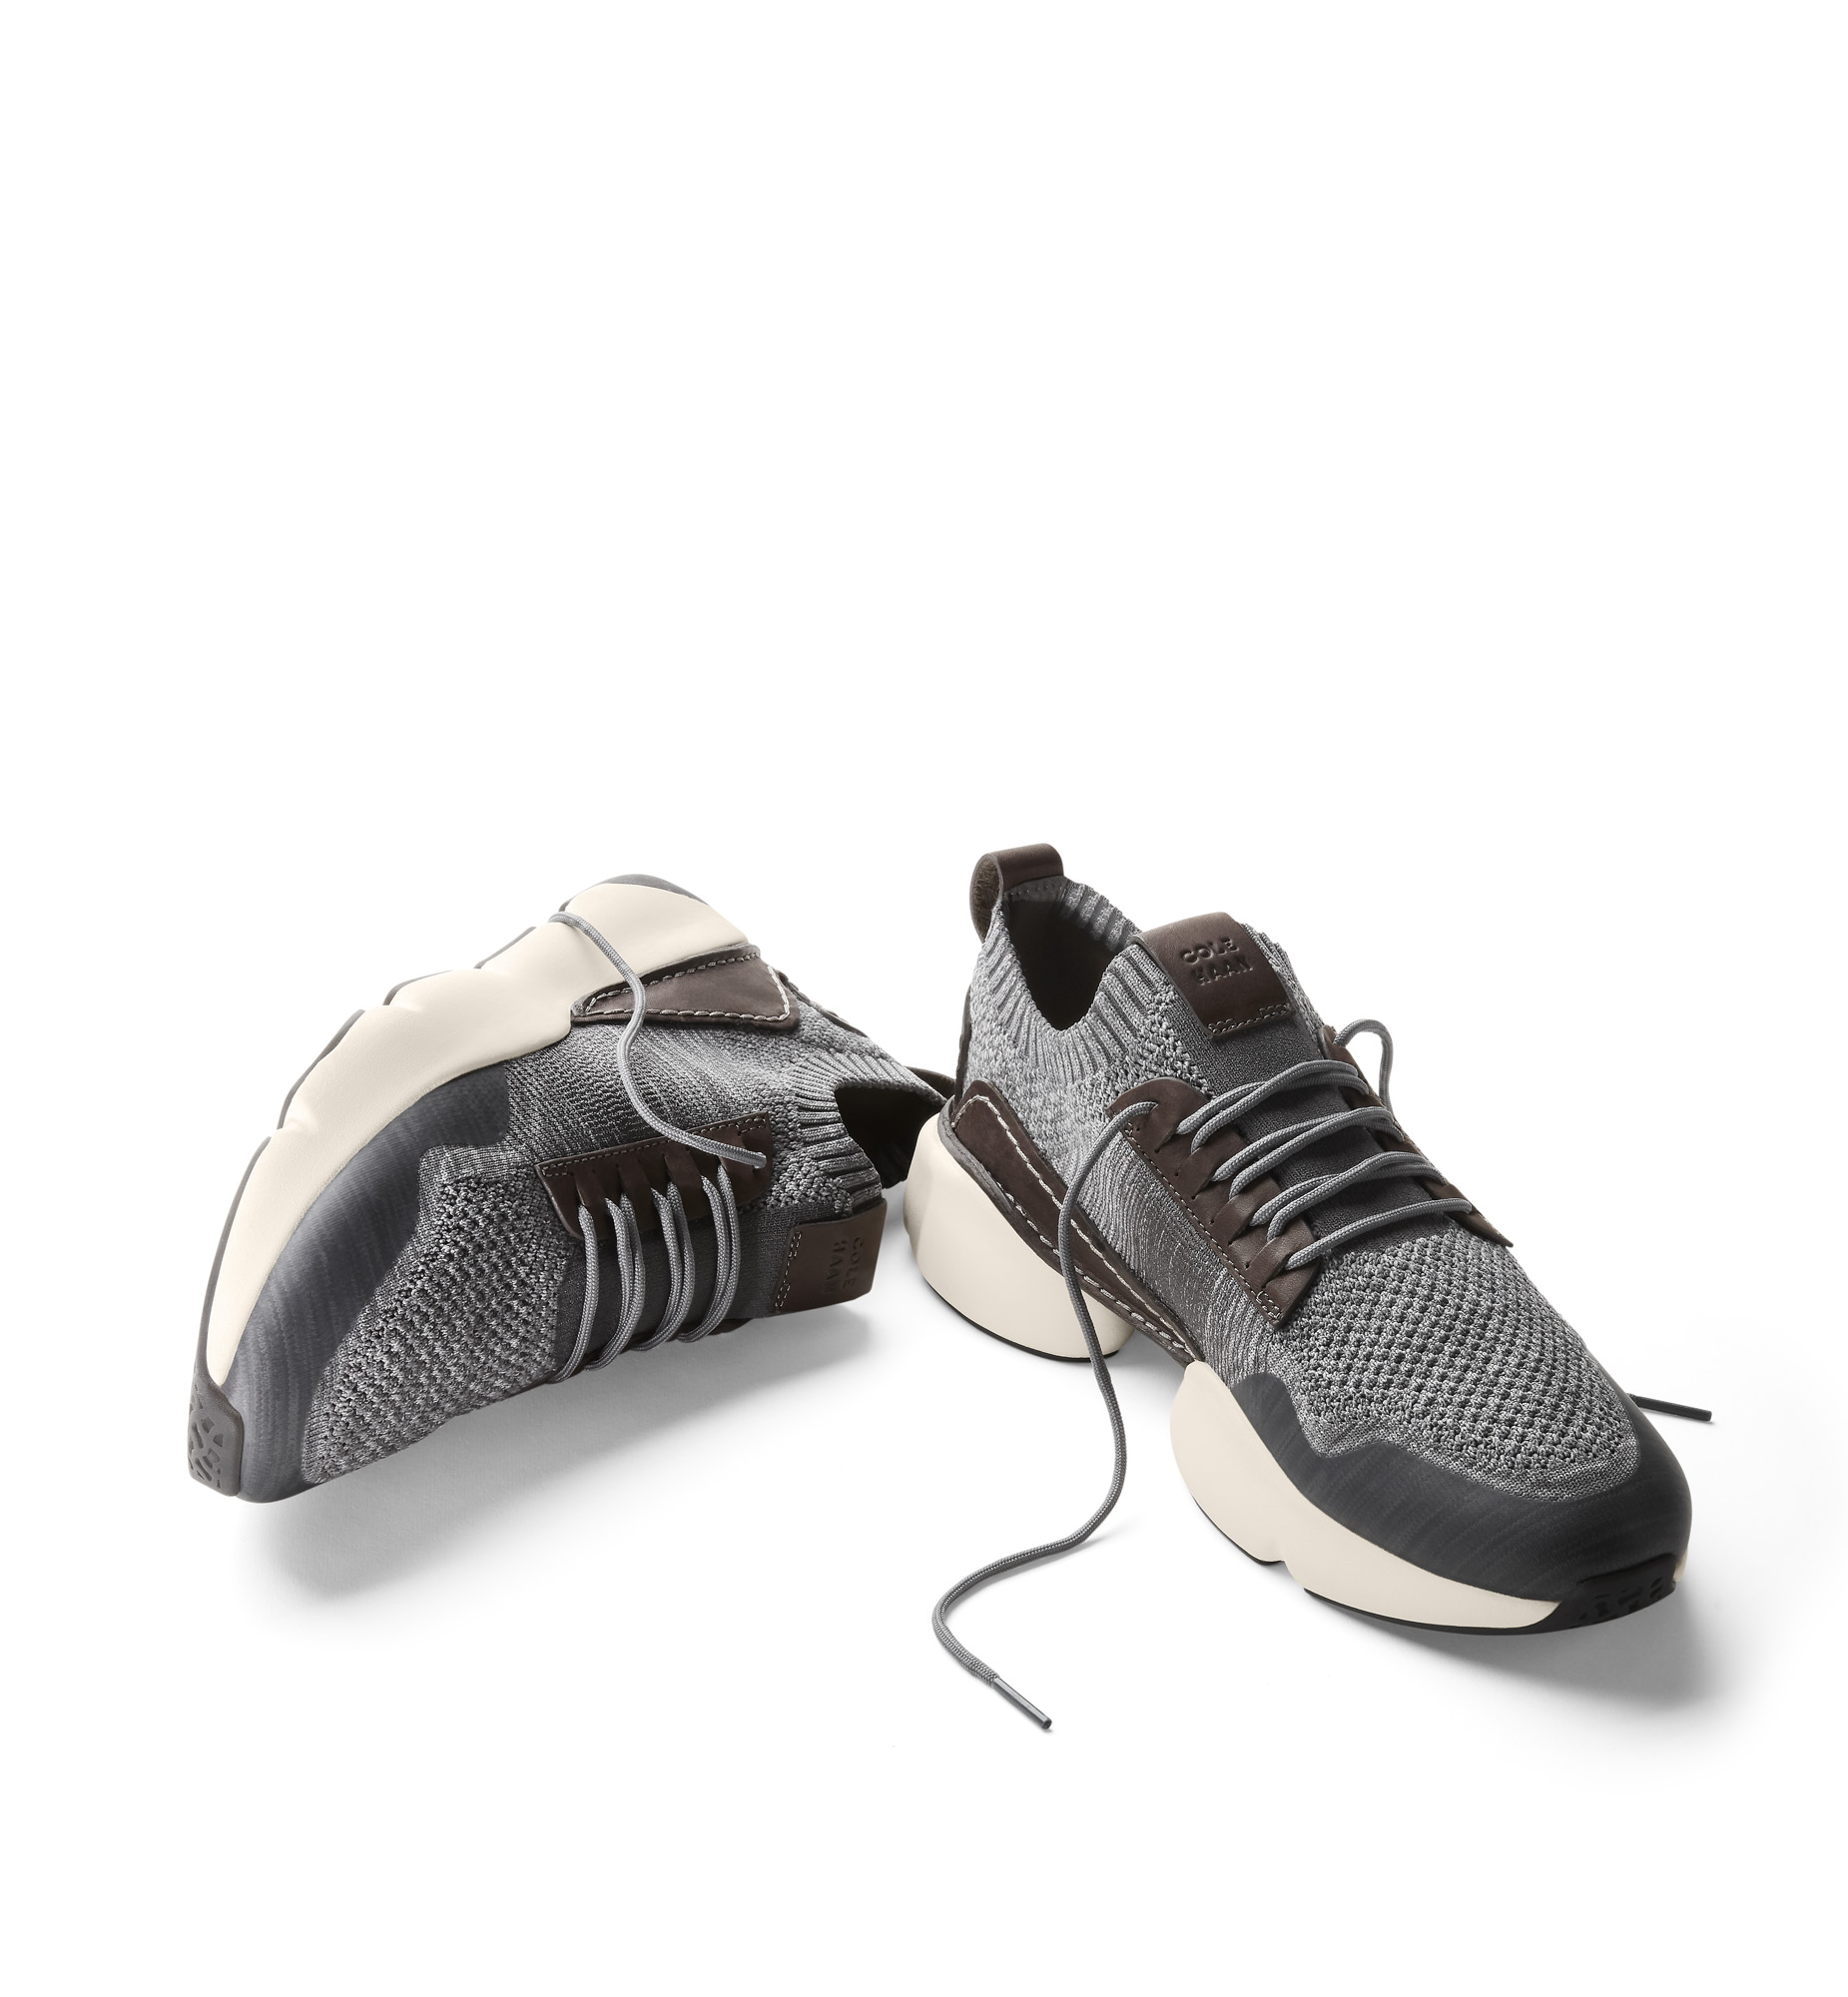 Cole Haan SS19 Zerogrand trainer grey laces